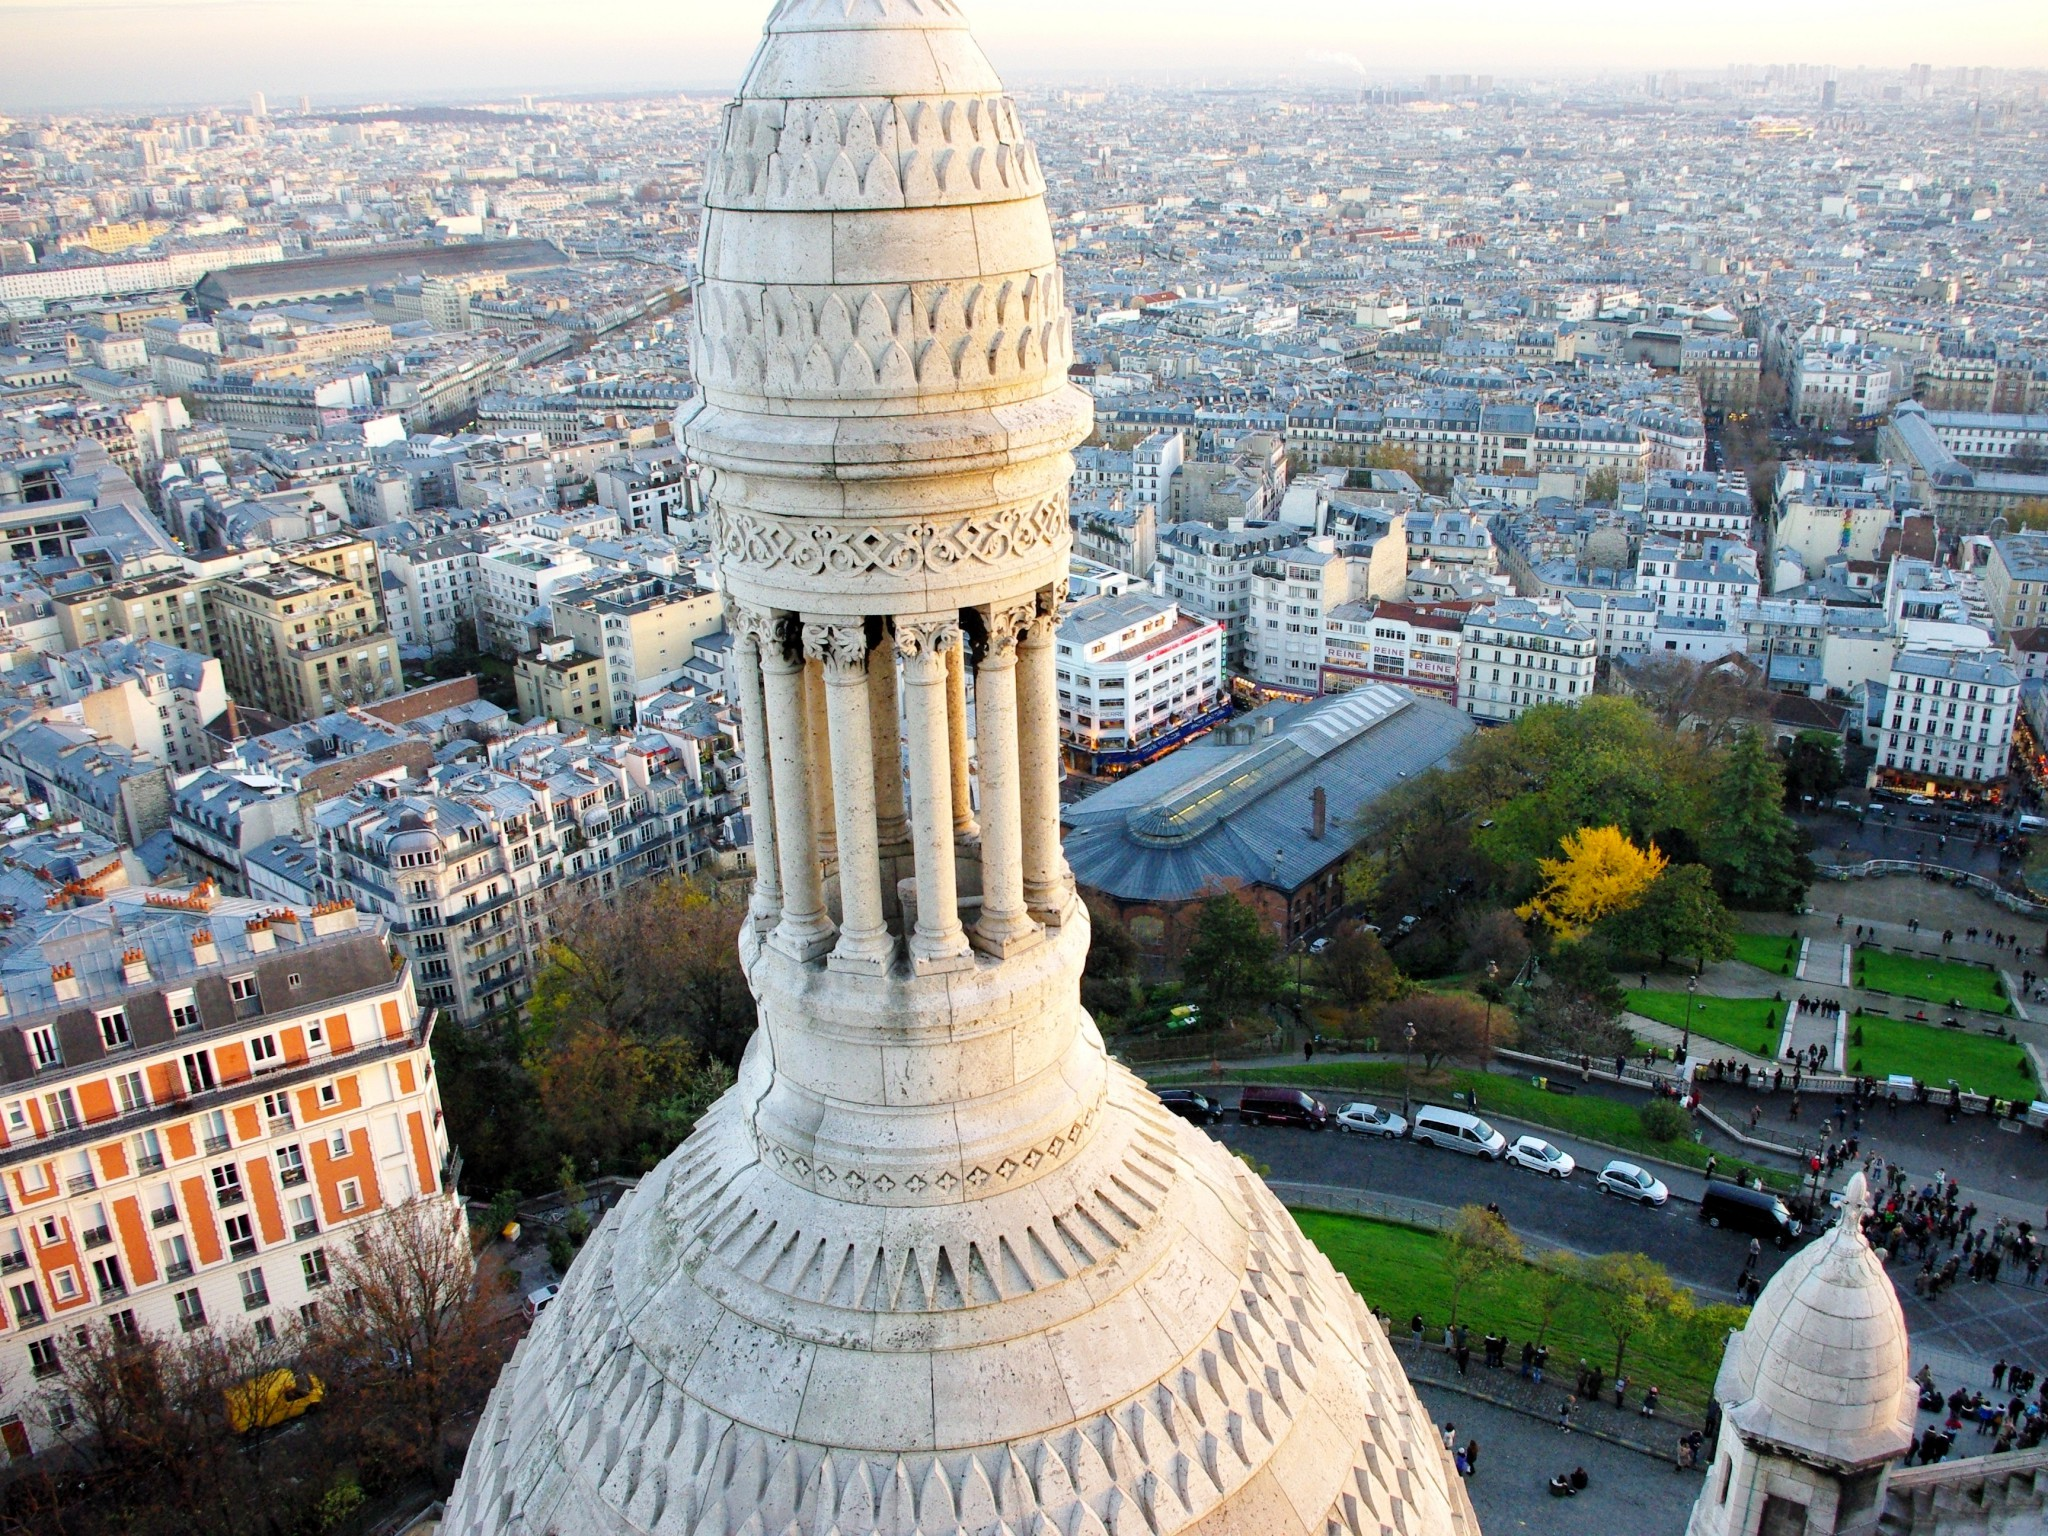 View from Dome of Sacré-Coeur © French Moments